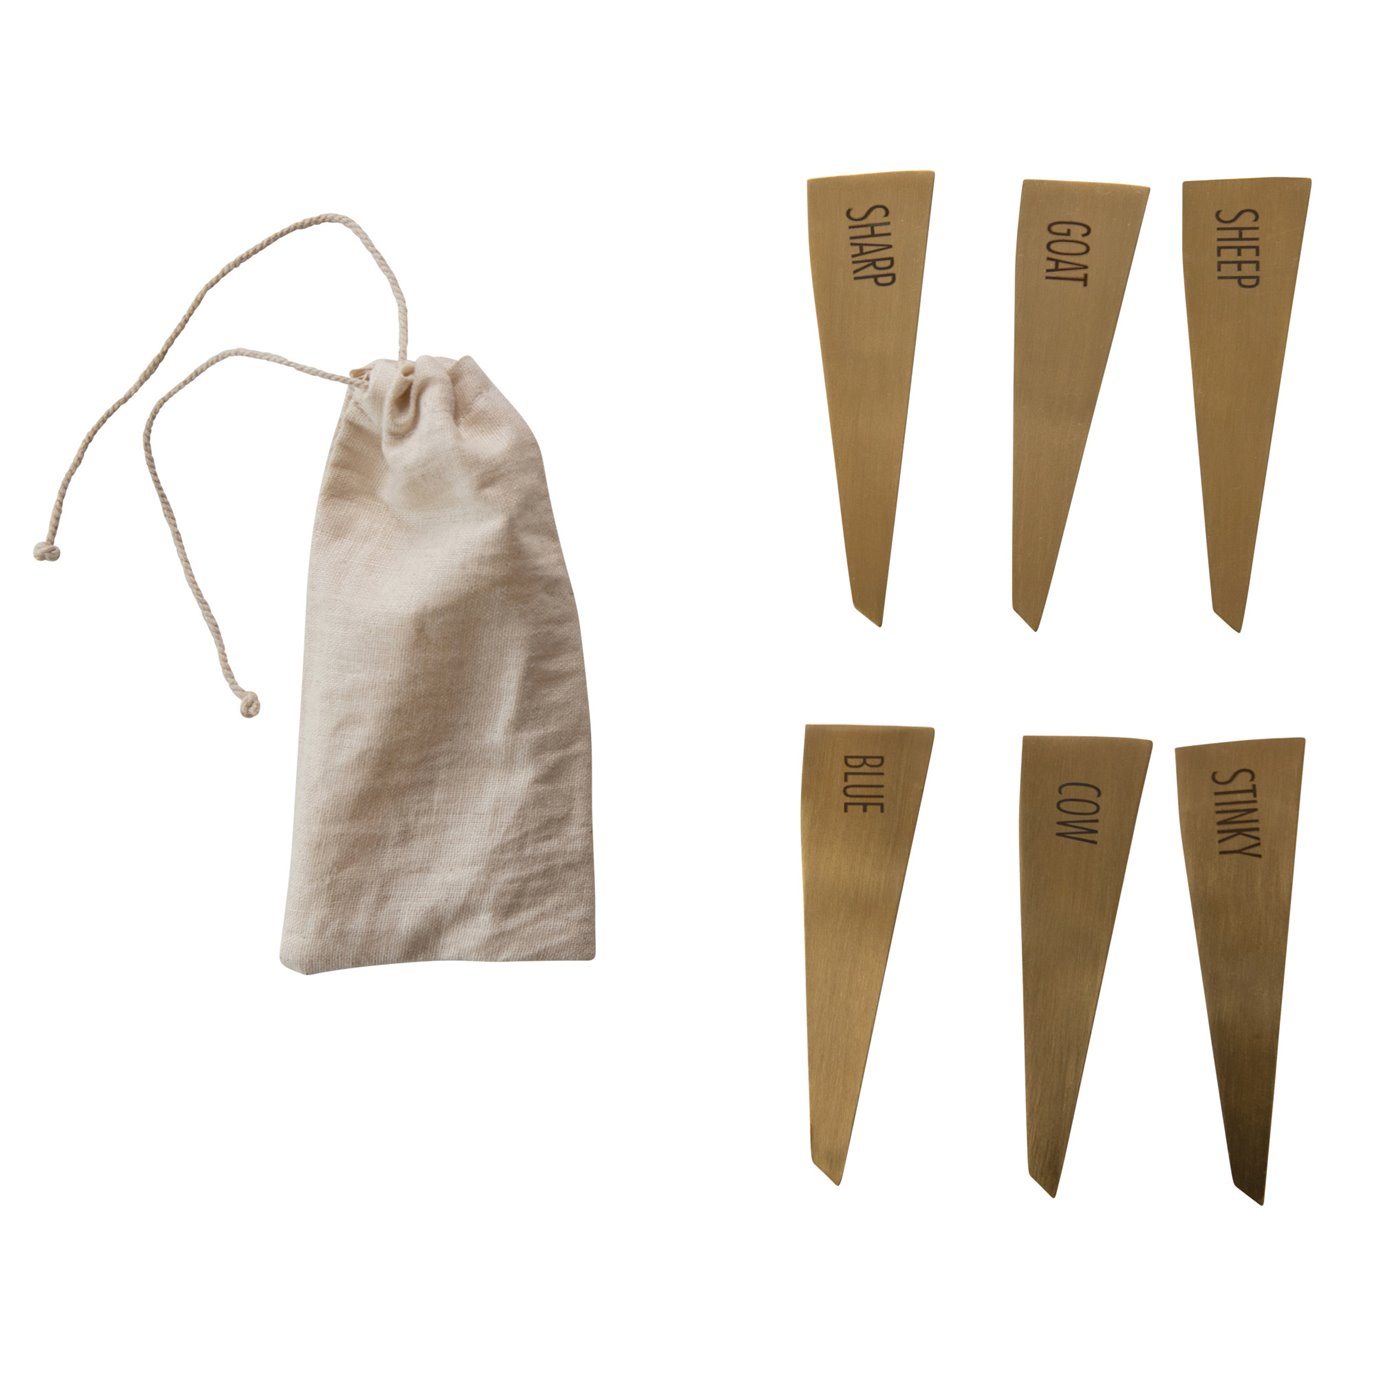 Brass Stainless Steel Cheese Markers (Set of 6)